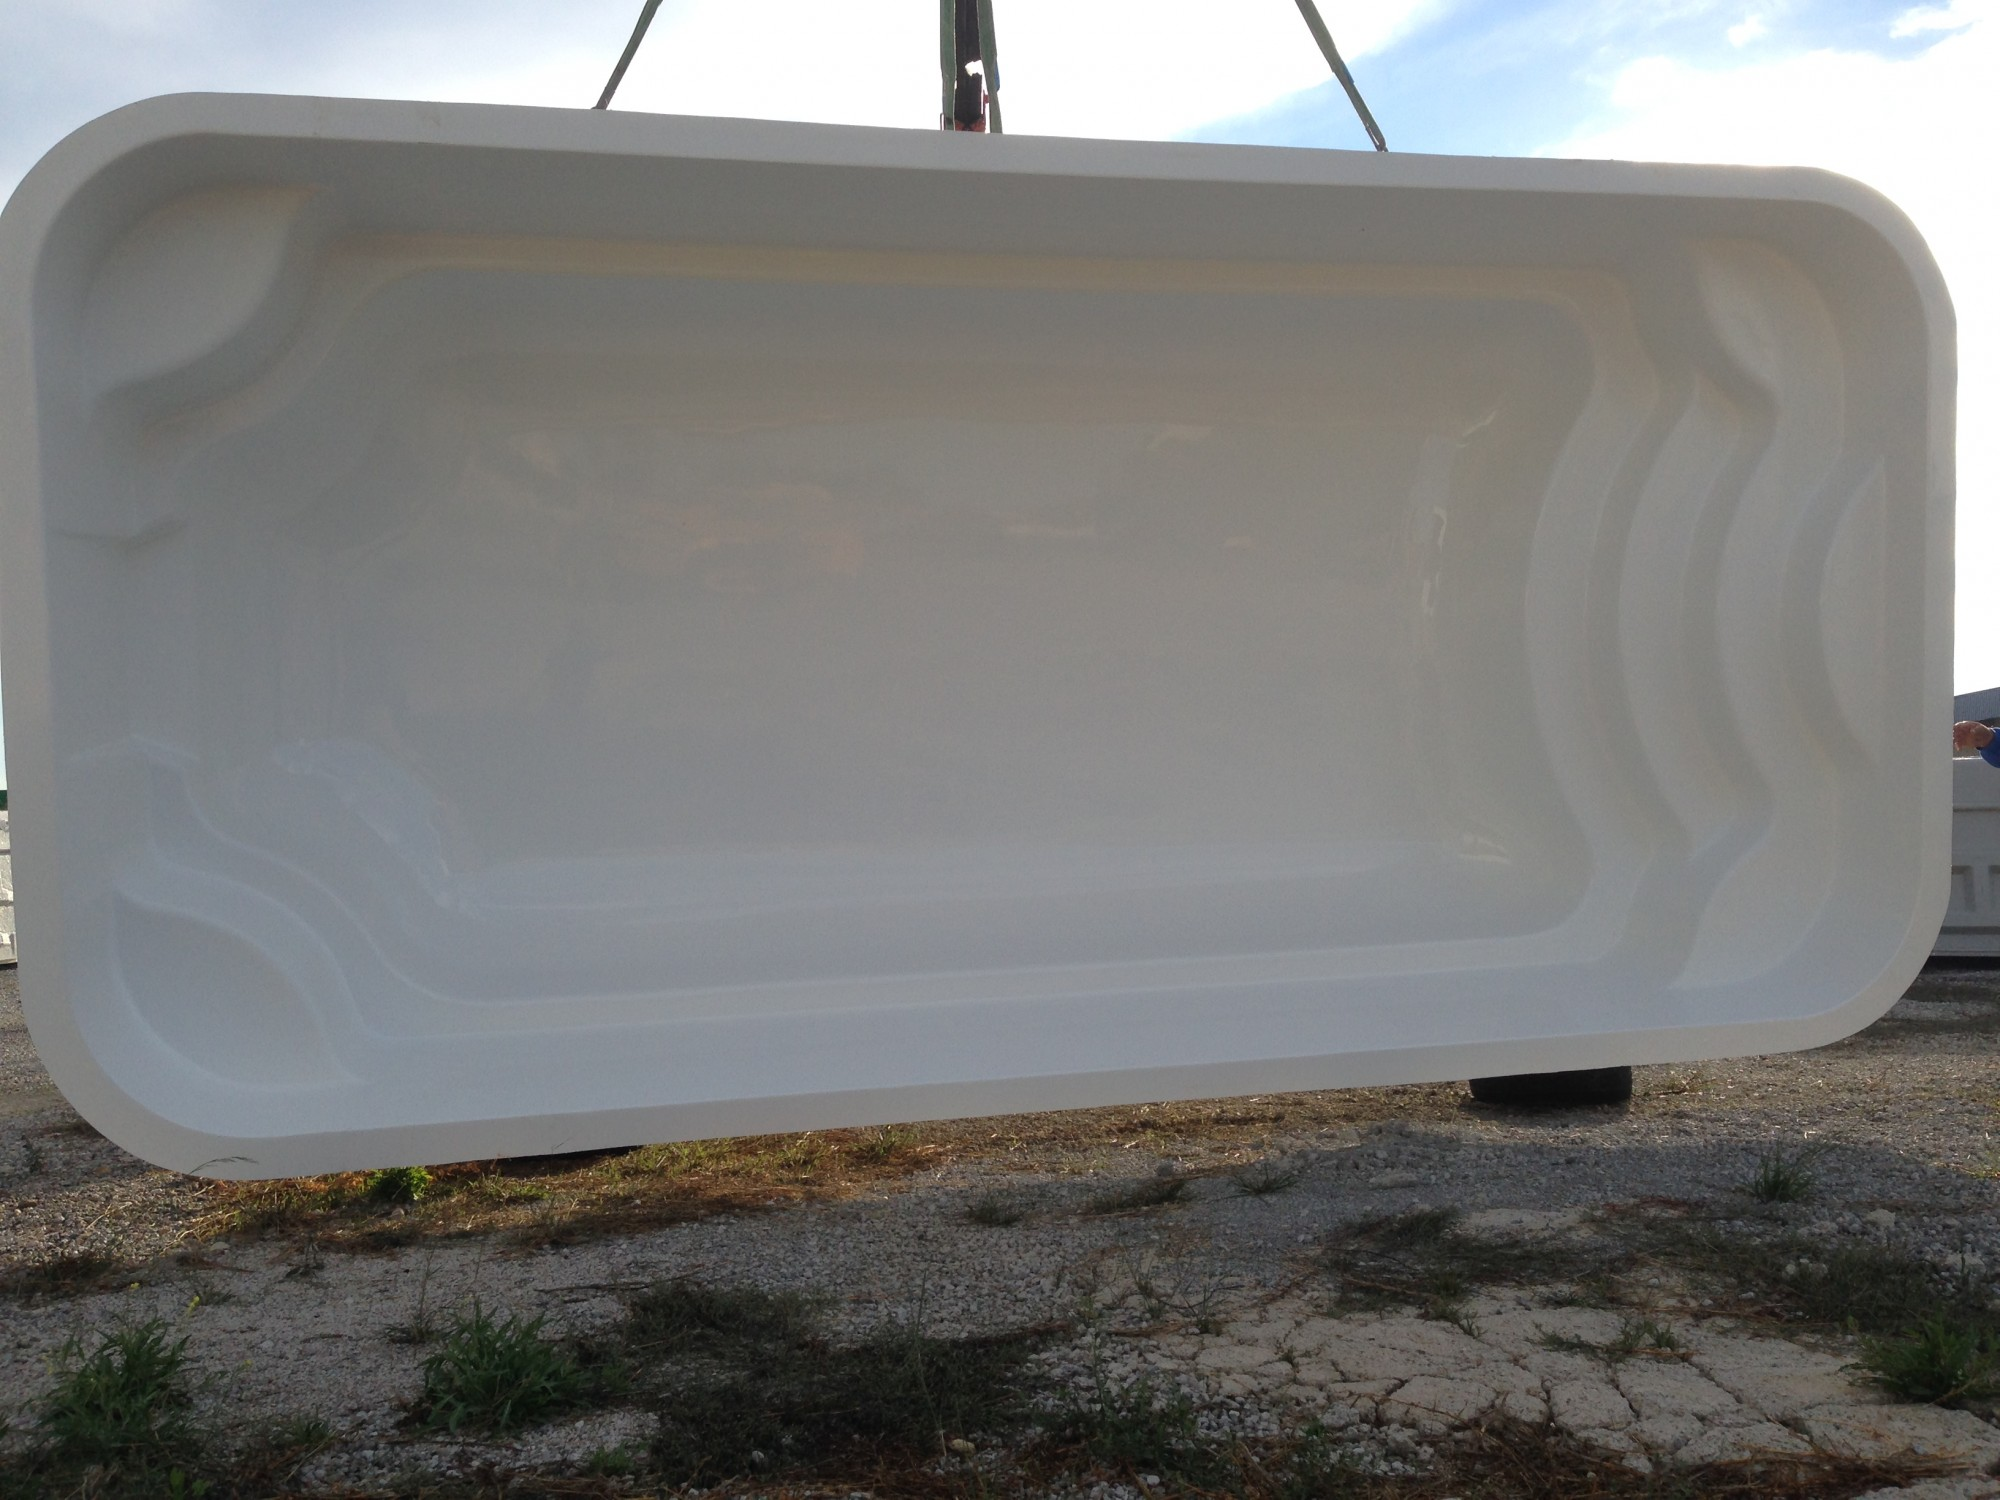 Piscine coque polyester mod le declic 600 installation for Piscine coque petit modele